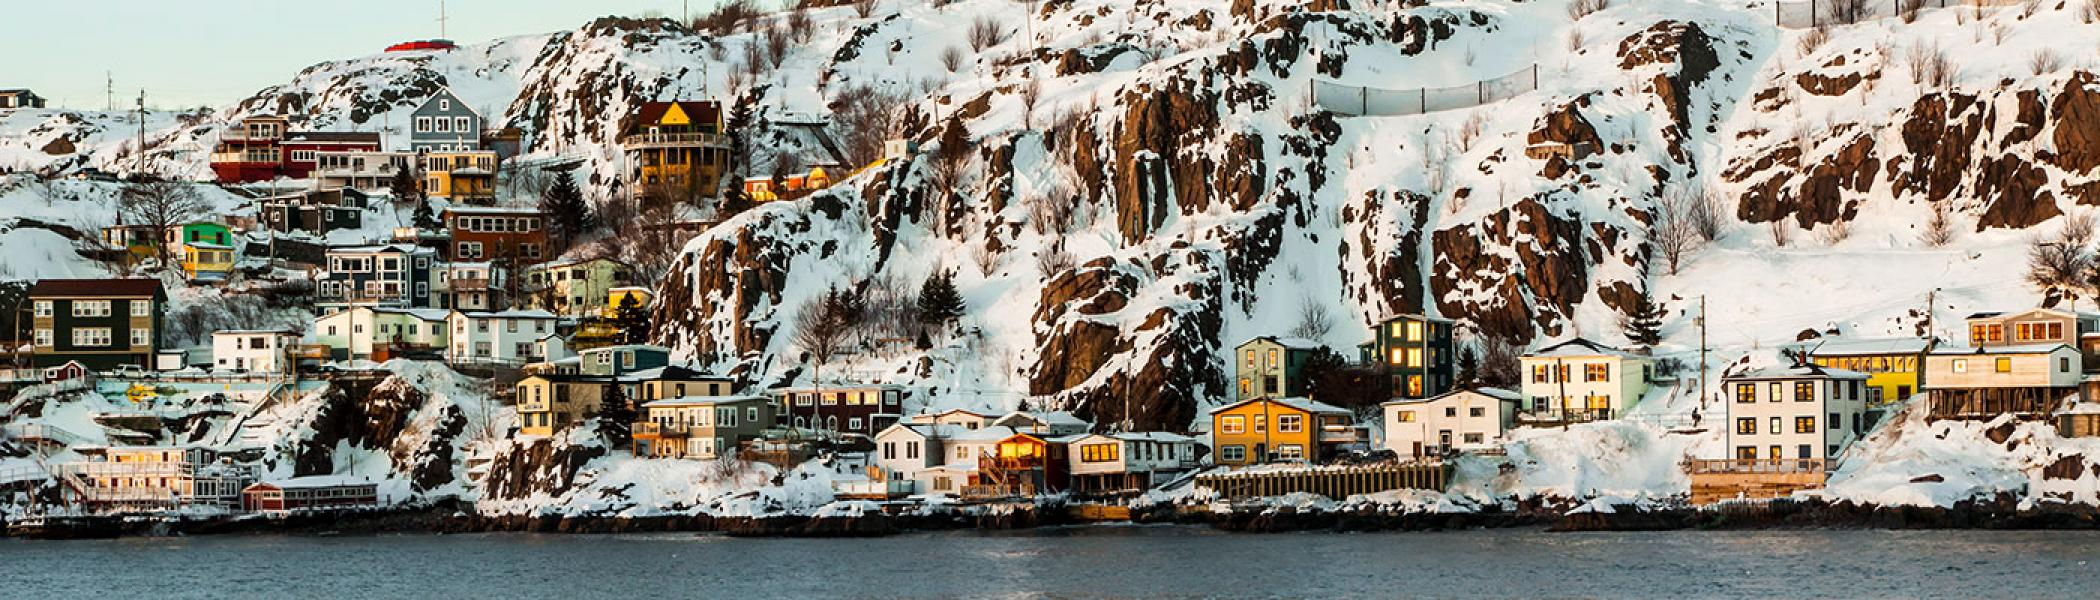 a town of colourful houses set next to water and a snowy rock-face